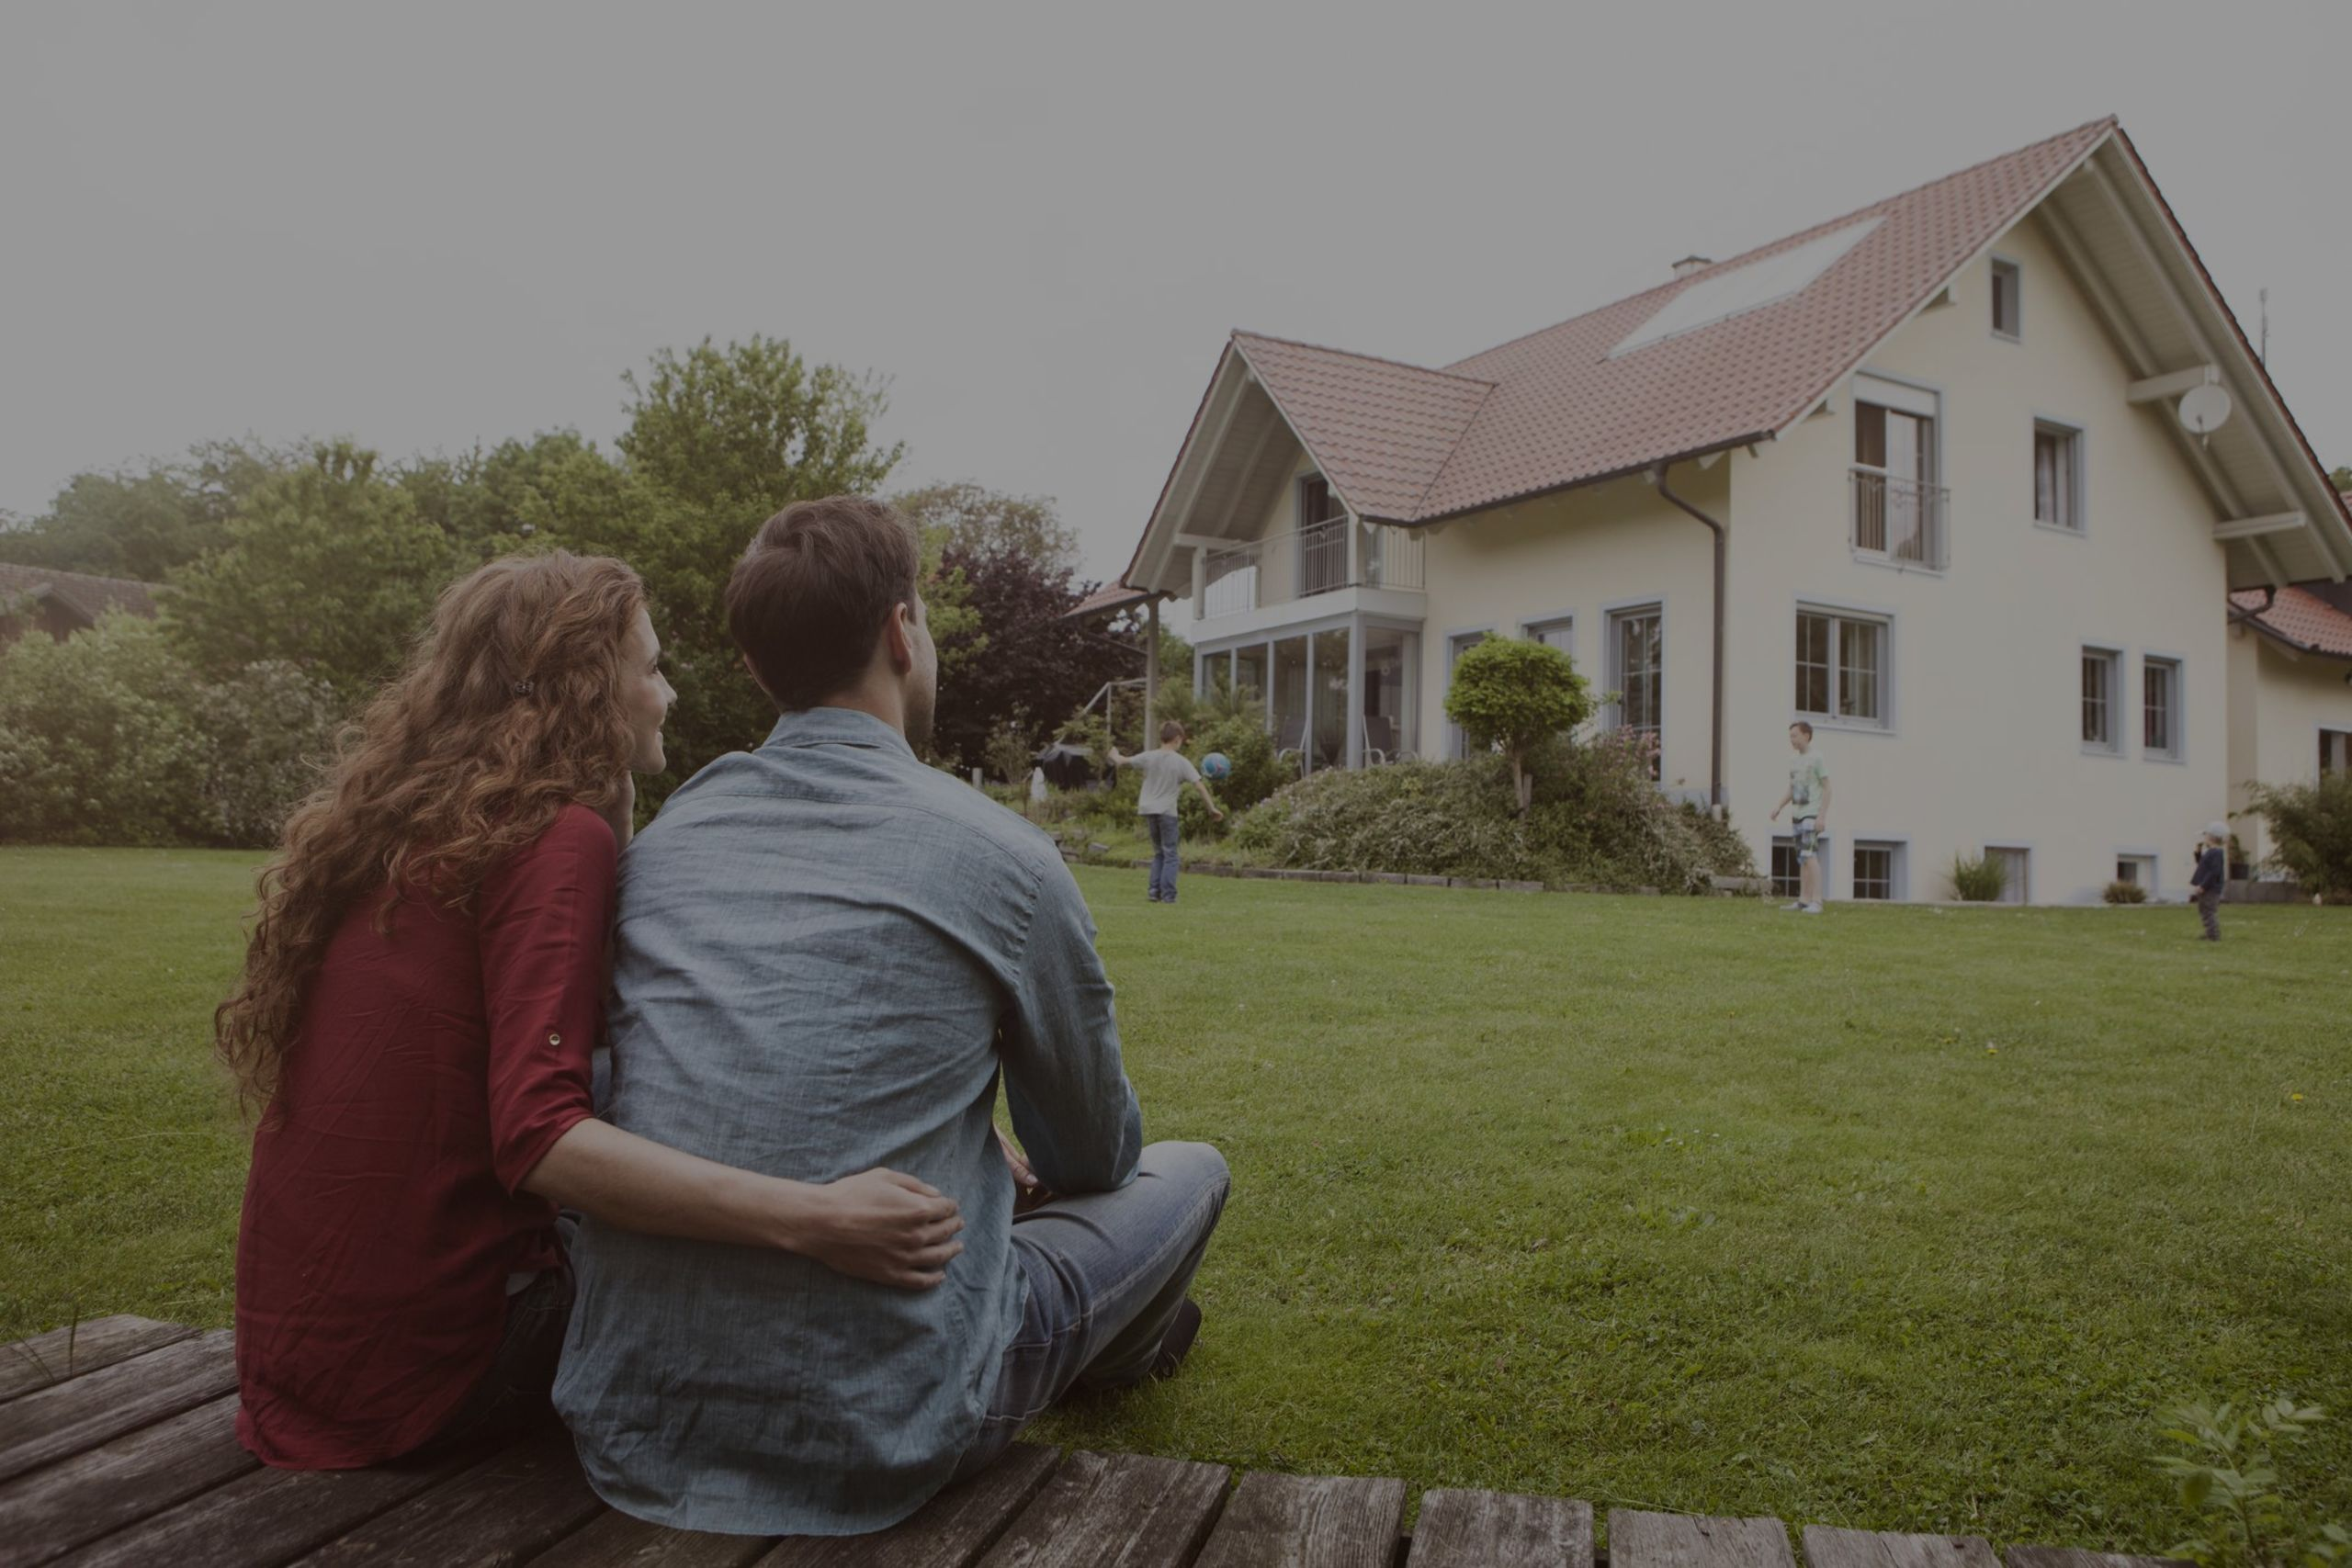 4 Questions to Ask Before Selling a Home